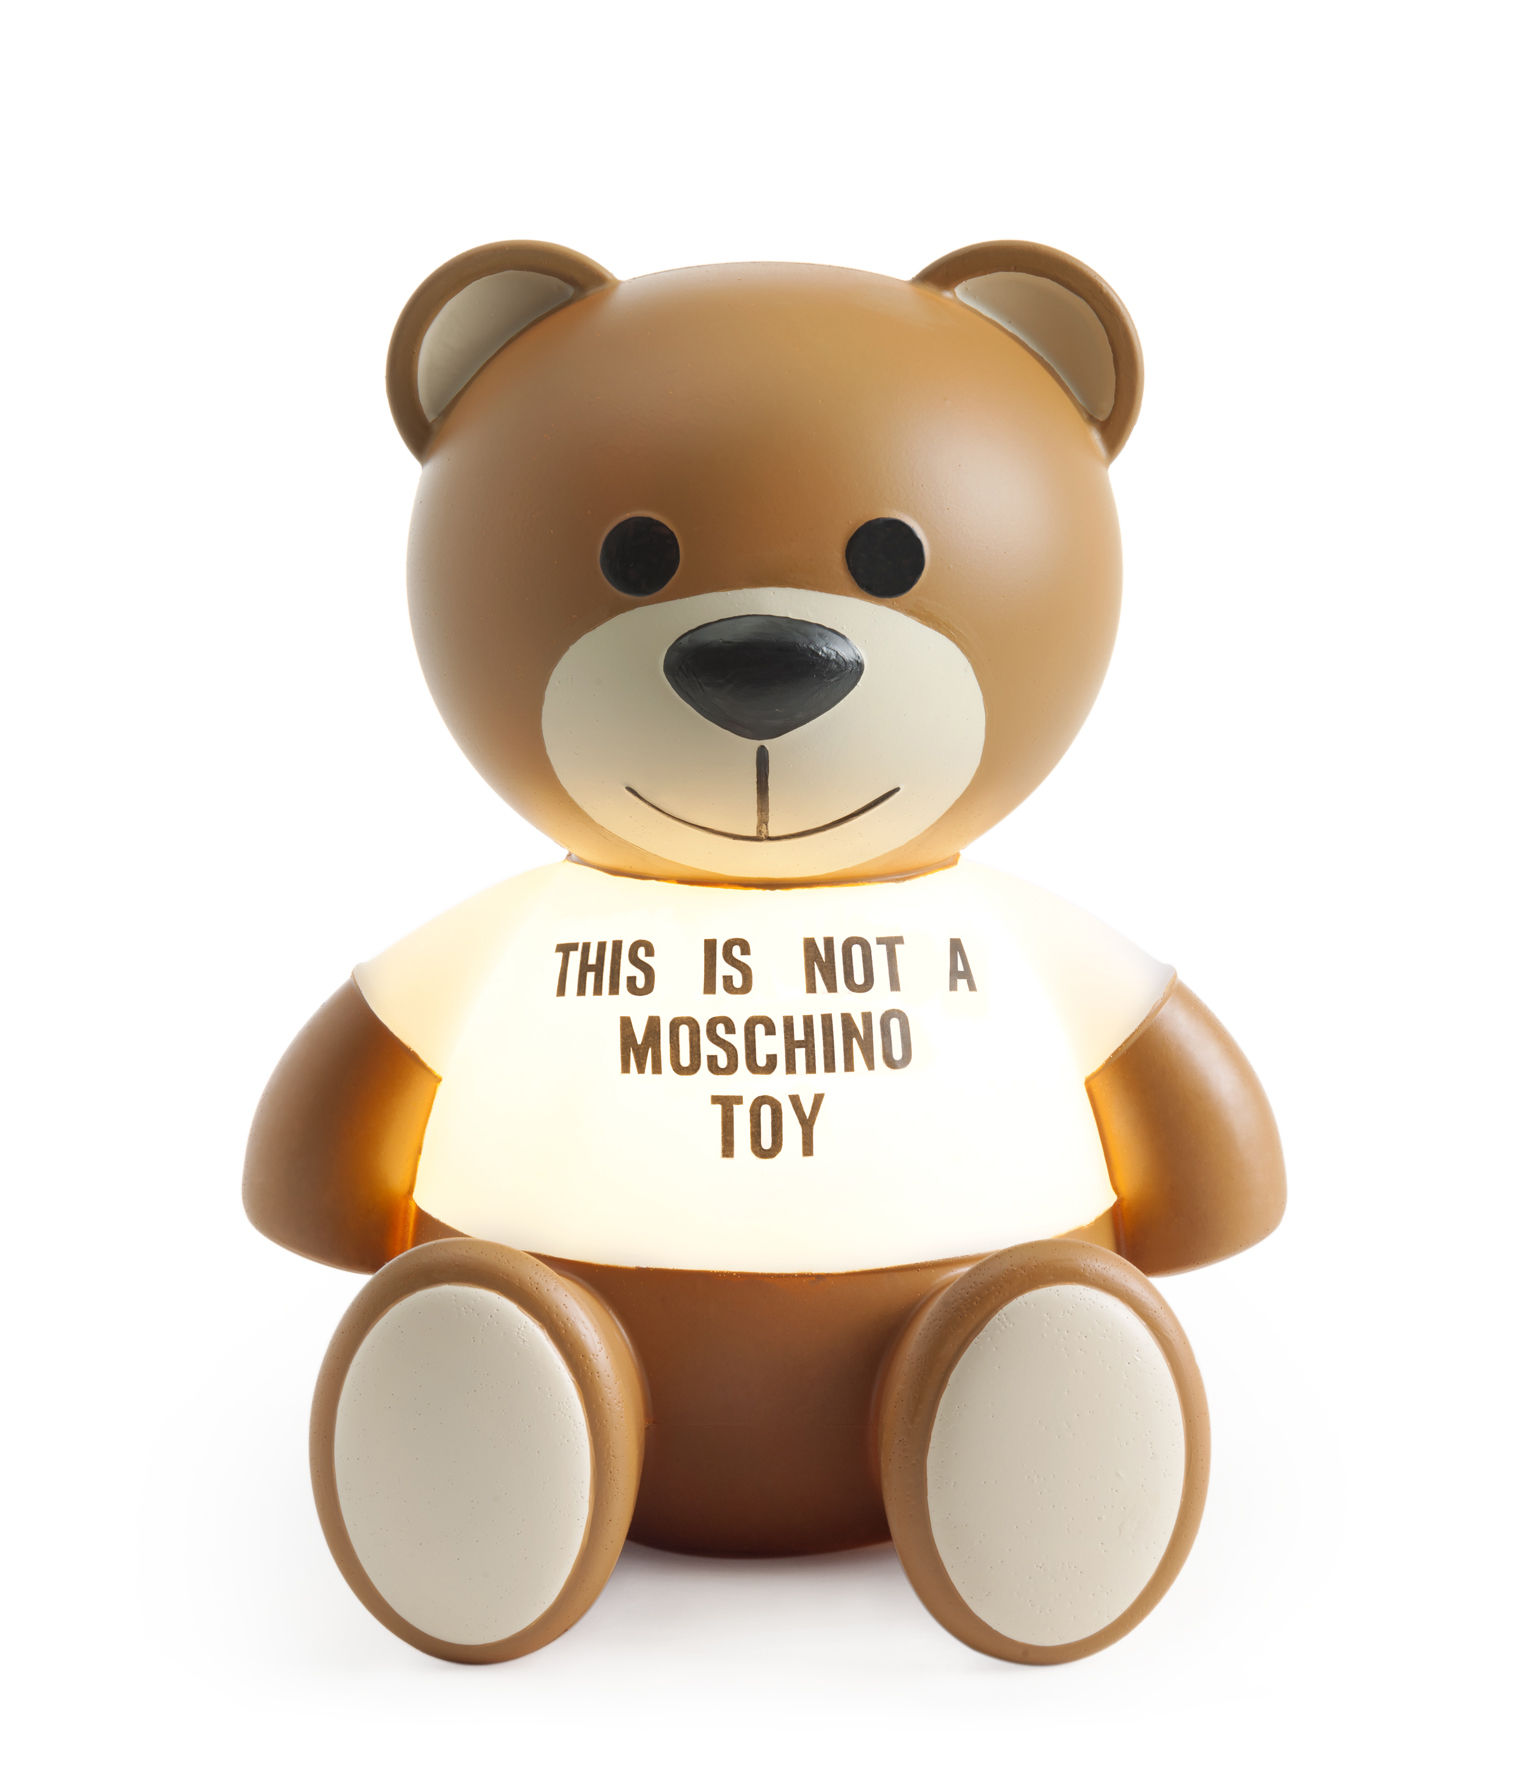 Decoration - Children's Home Accessories - Toy Moschino Table lamp - / Polyethylene by Kartell - Brown & transparent - Polyéthylène peint